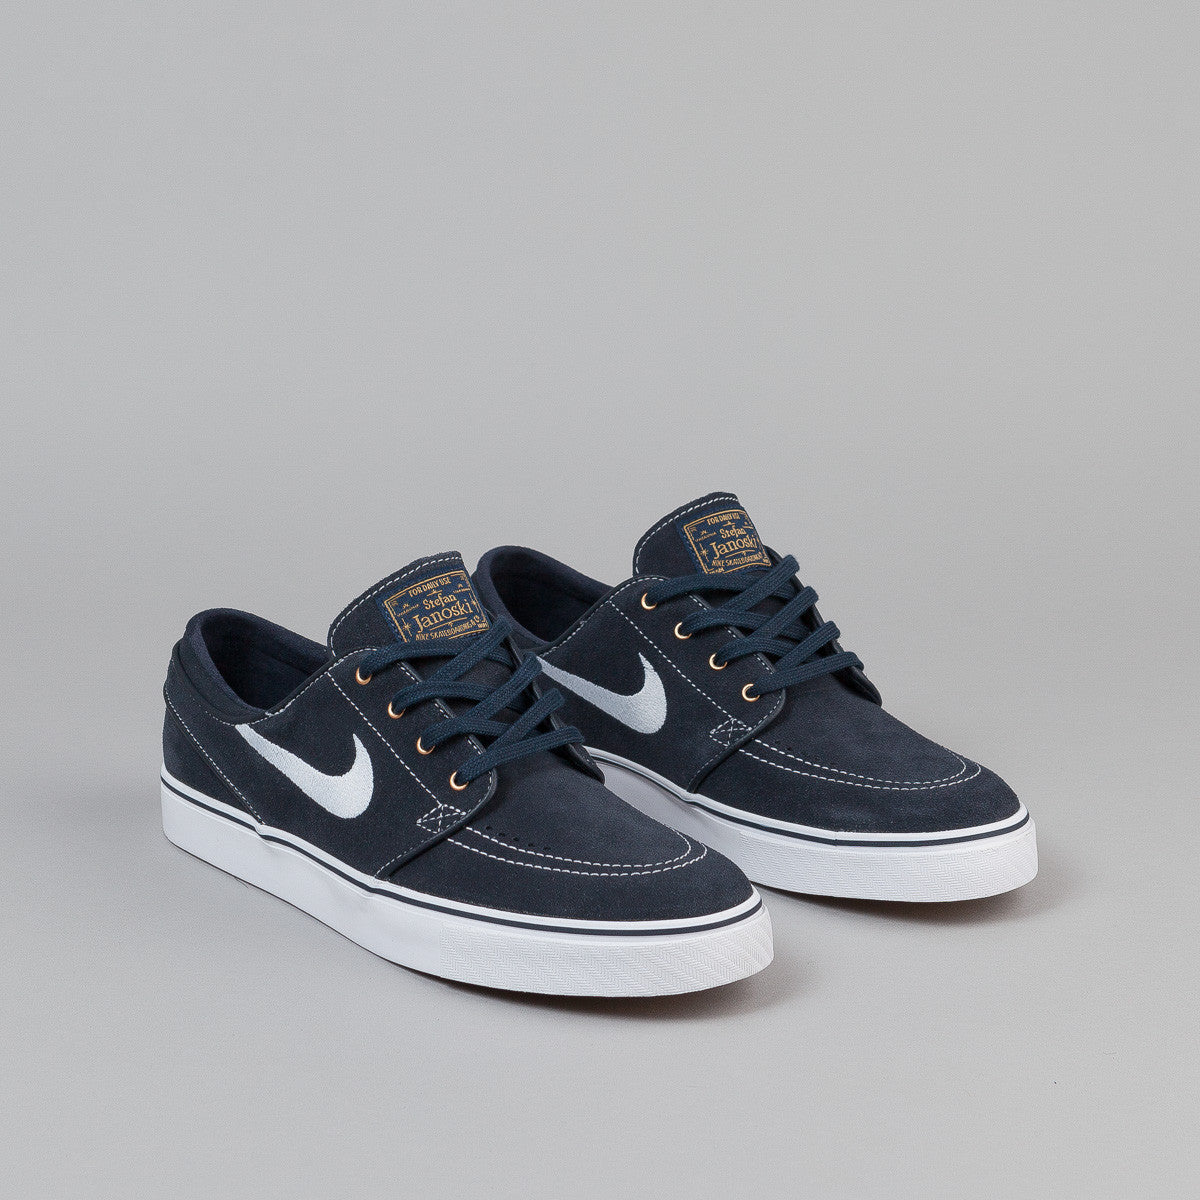 nike sb stefan janoski shoes dark obsidian white white gum lig flatspot. Black Bedroom Furniture Sets. Home Design Ideas